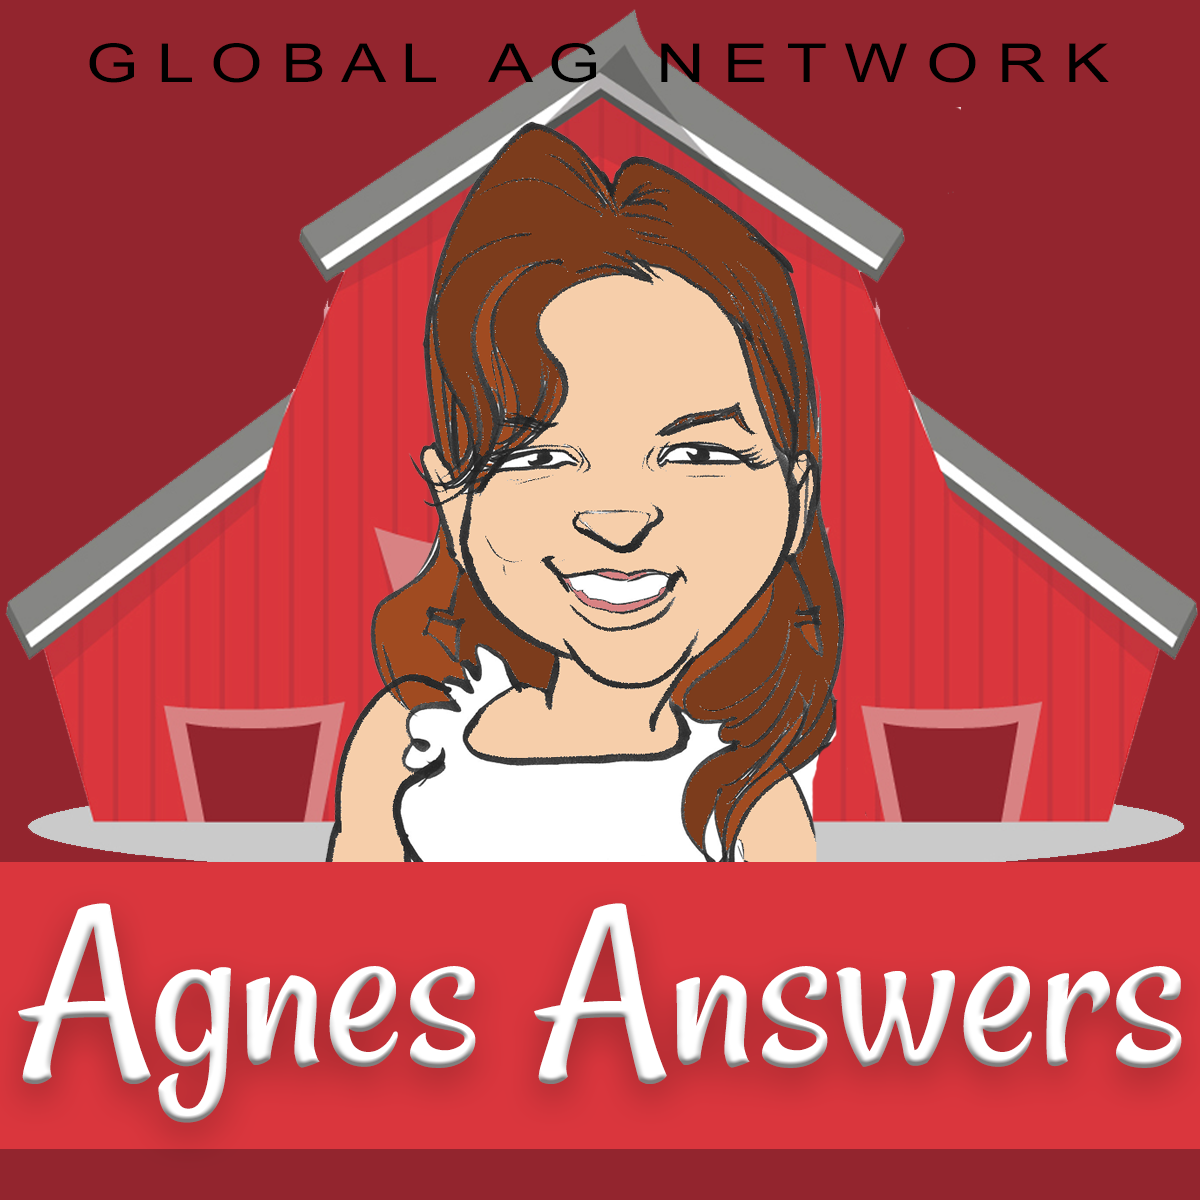 Agnes Answers